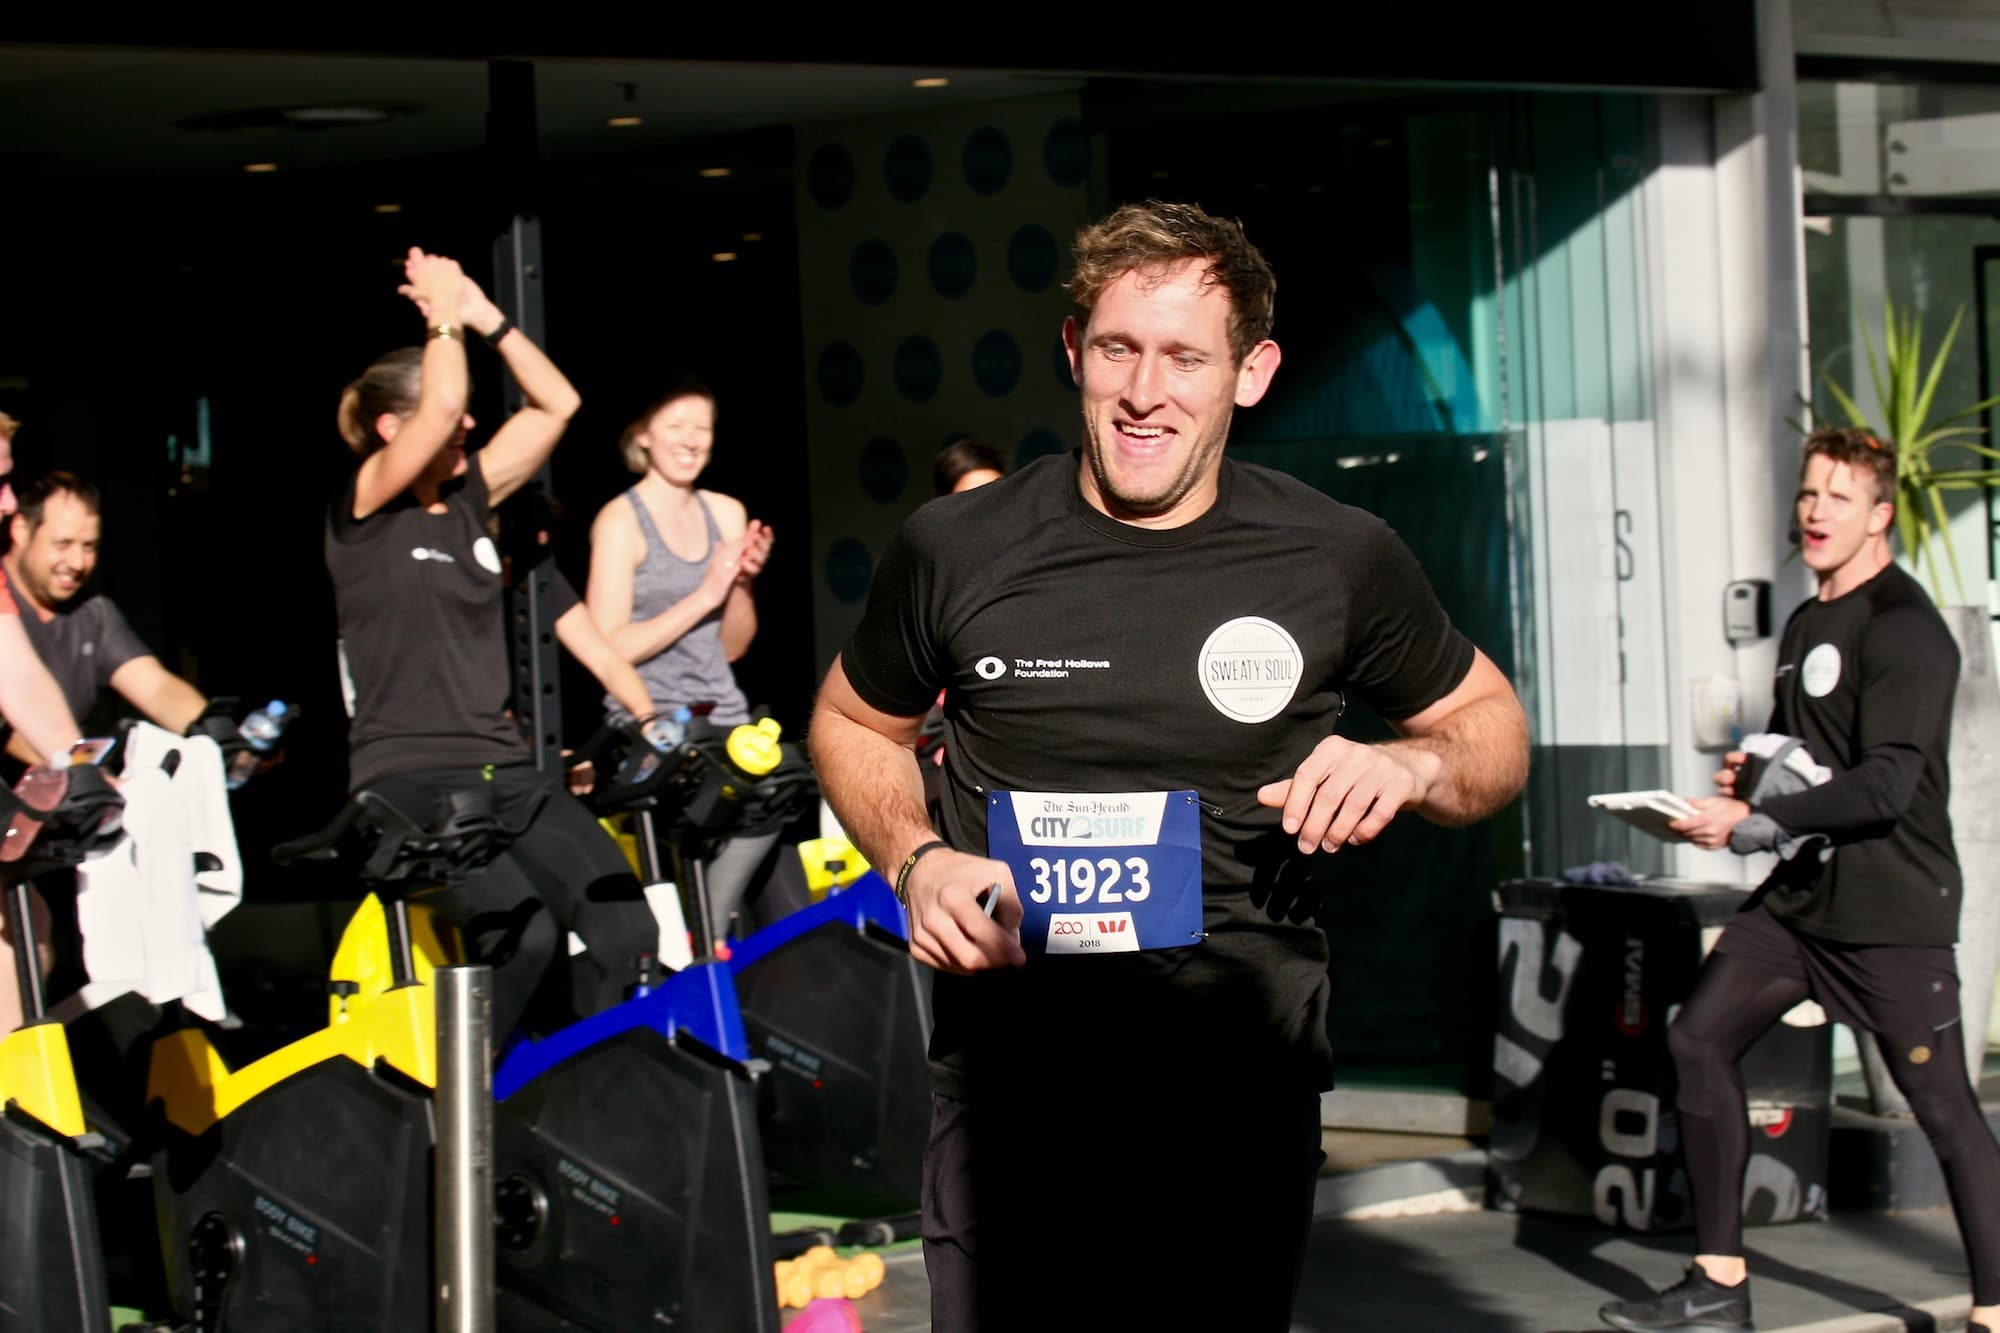 City2Surf registrations for Fred Hollows Foundation